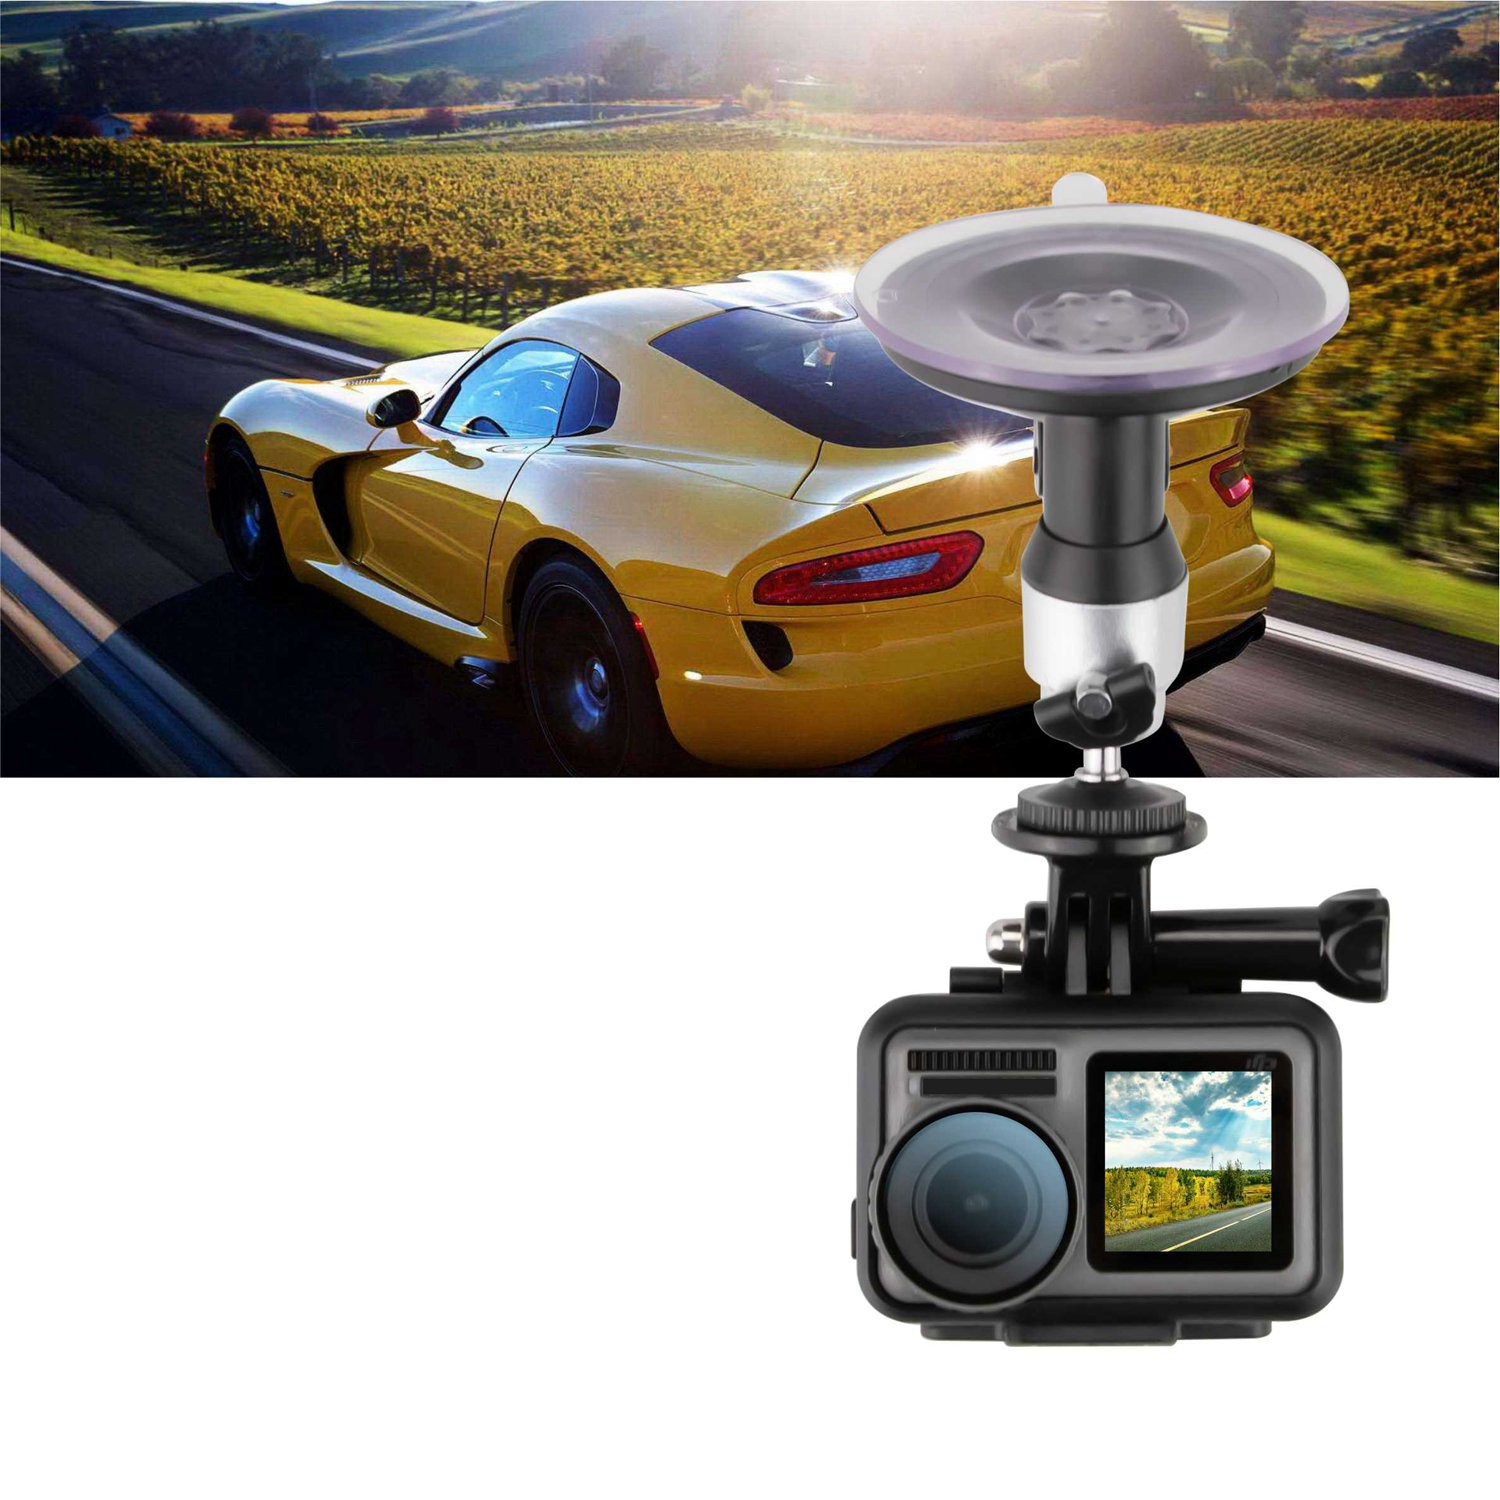 For Dji Osmo Action Car Glass Sucker Adapter Suction Cup Mount Holder Fix Bracket Desktop Stand Car Bracket Camera Mount Acces